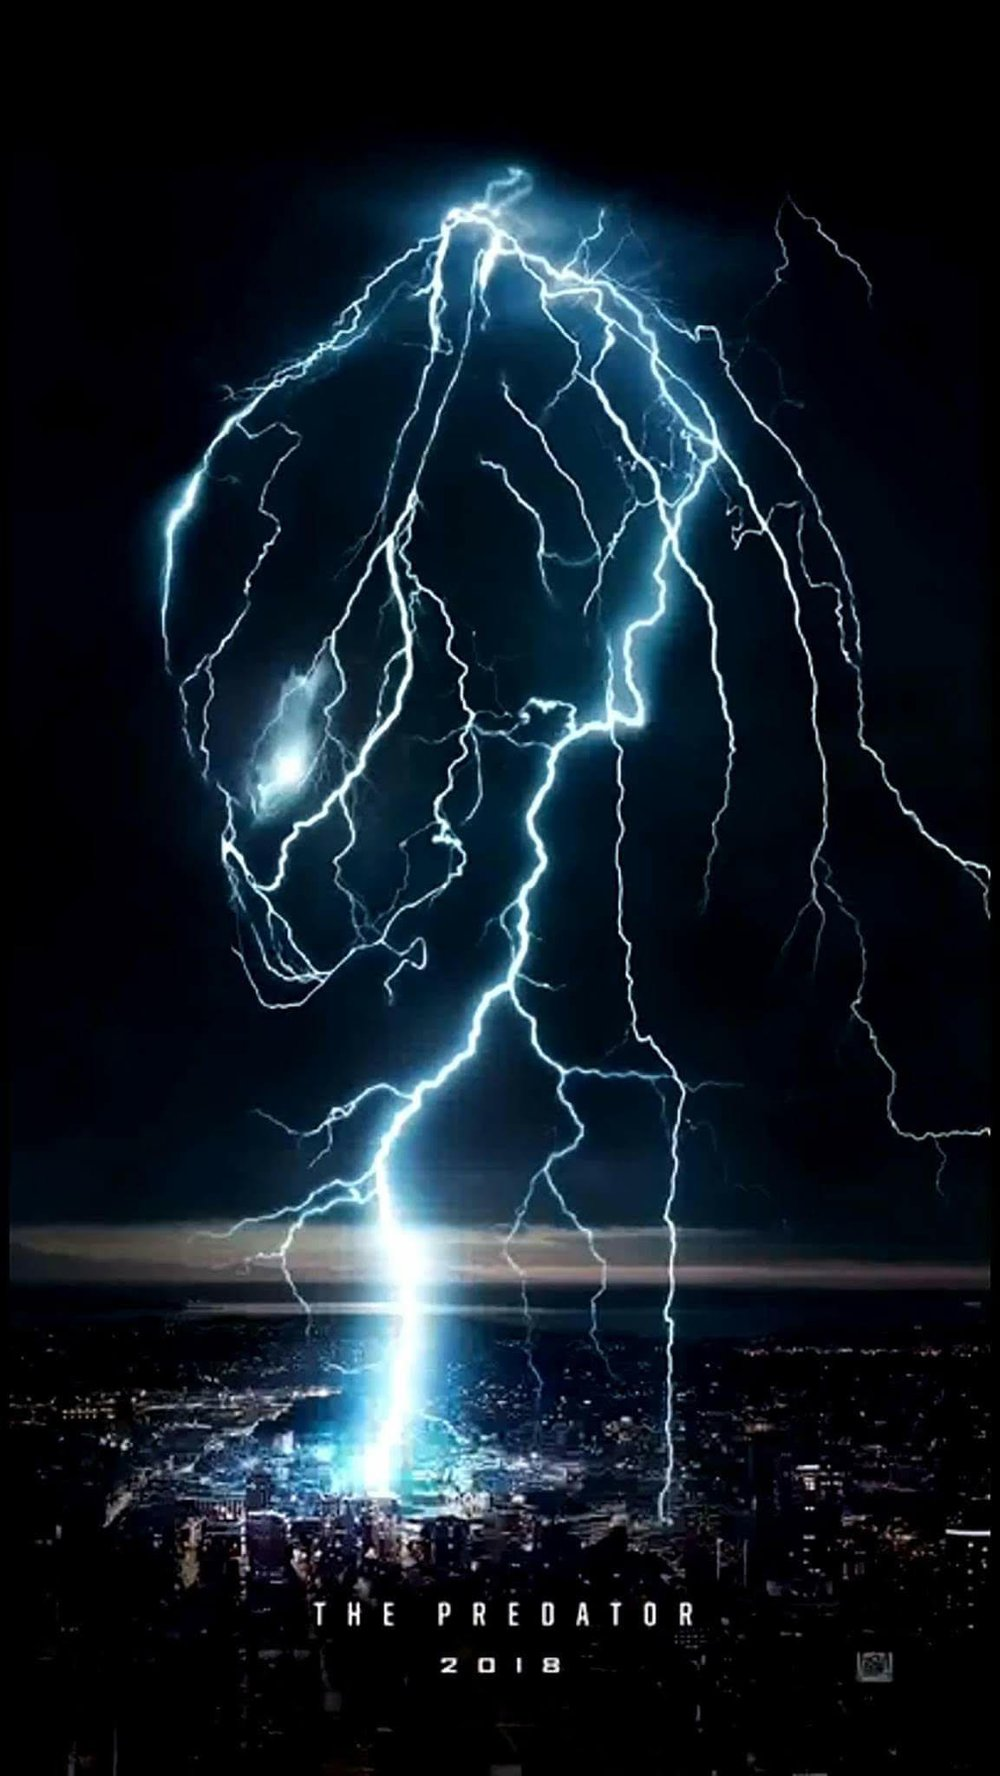 Review of Predator by Kathia Woods - The latest installment of Predator takes on a comedic twist for this outing. Gone is man vs. alien aspect, but this time it seems its military vs. scientist vs. militia. The new hero in this chapter is Quinn McKenna. He has a military background and a gifted son. Both components are the backdrop for this series. One would think this would give this movie a refreshing point of view however it does not.The franchise was built on military specialist using their superior skills to contain the predator. This time the specialists are labeled mentally challenged. This movie had a lot of humor intertwined throughout the story, but the fan base doesn't come to see a comedy but an action movie. It was nice seeing Sterling K Brown portraying a bad guy; however, the material didn't make him very intimidating. Olivia Munn had the potential to be a great Heroine however she was underused. The unsung heroes in this movie are the mentally challenged crew. Trevante Rhodes, Keegan Michael-Key, Thomas Jane, Alfie Allen, and Augusto Aguilera. We needed more content on them other than small clips. This movie was missing more action. There were too many moments of predictability. Predator is supposed to be scary but the fact that they didn't even want to call him Predator is problematic. There was zero suspense. This mission was happenstance, unlike the previous chapters where it was an act of bravery. Where was the fear? Also, this predator wasn't very intimidating. I understand what the director was trying to do however we are on the fourth installment of this franchise and he made this beast boring not frightening. He was trying to inject humor, but it came across as cheesy. The special effects were also overused. The new Hollywood philosophy when a story isn't terrific is let's use a ton of effects to cover it up. In this case, create futuristic dogs that are supposed be killers but turned into pets. One would think with this much talent; the movie would be better. Maybe next time they should watch the first one before making any more so they can understand the premise of the story. In the end, we have a movie filled with bad one-liners and bad special effectsDiversity- 9 - This movie had a female lead, African-American and Latino leads.Scale 1-10- I give this movie a 5 because it was just a mess.